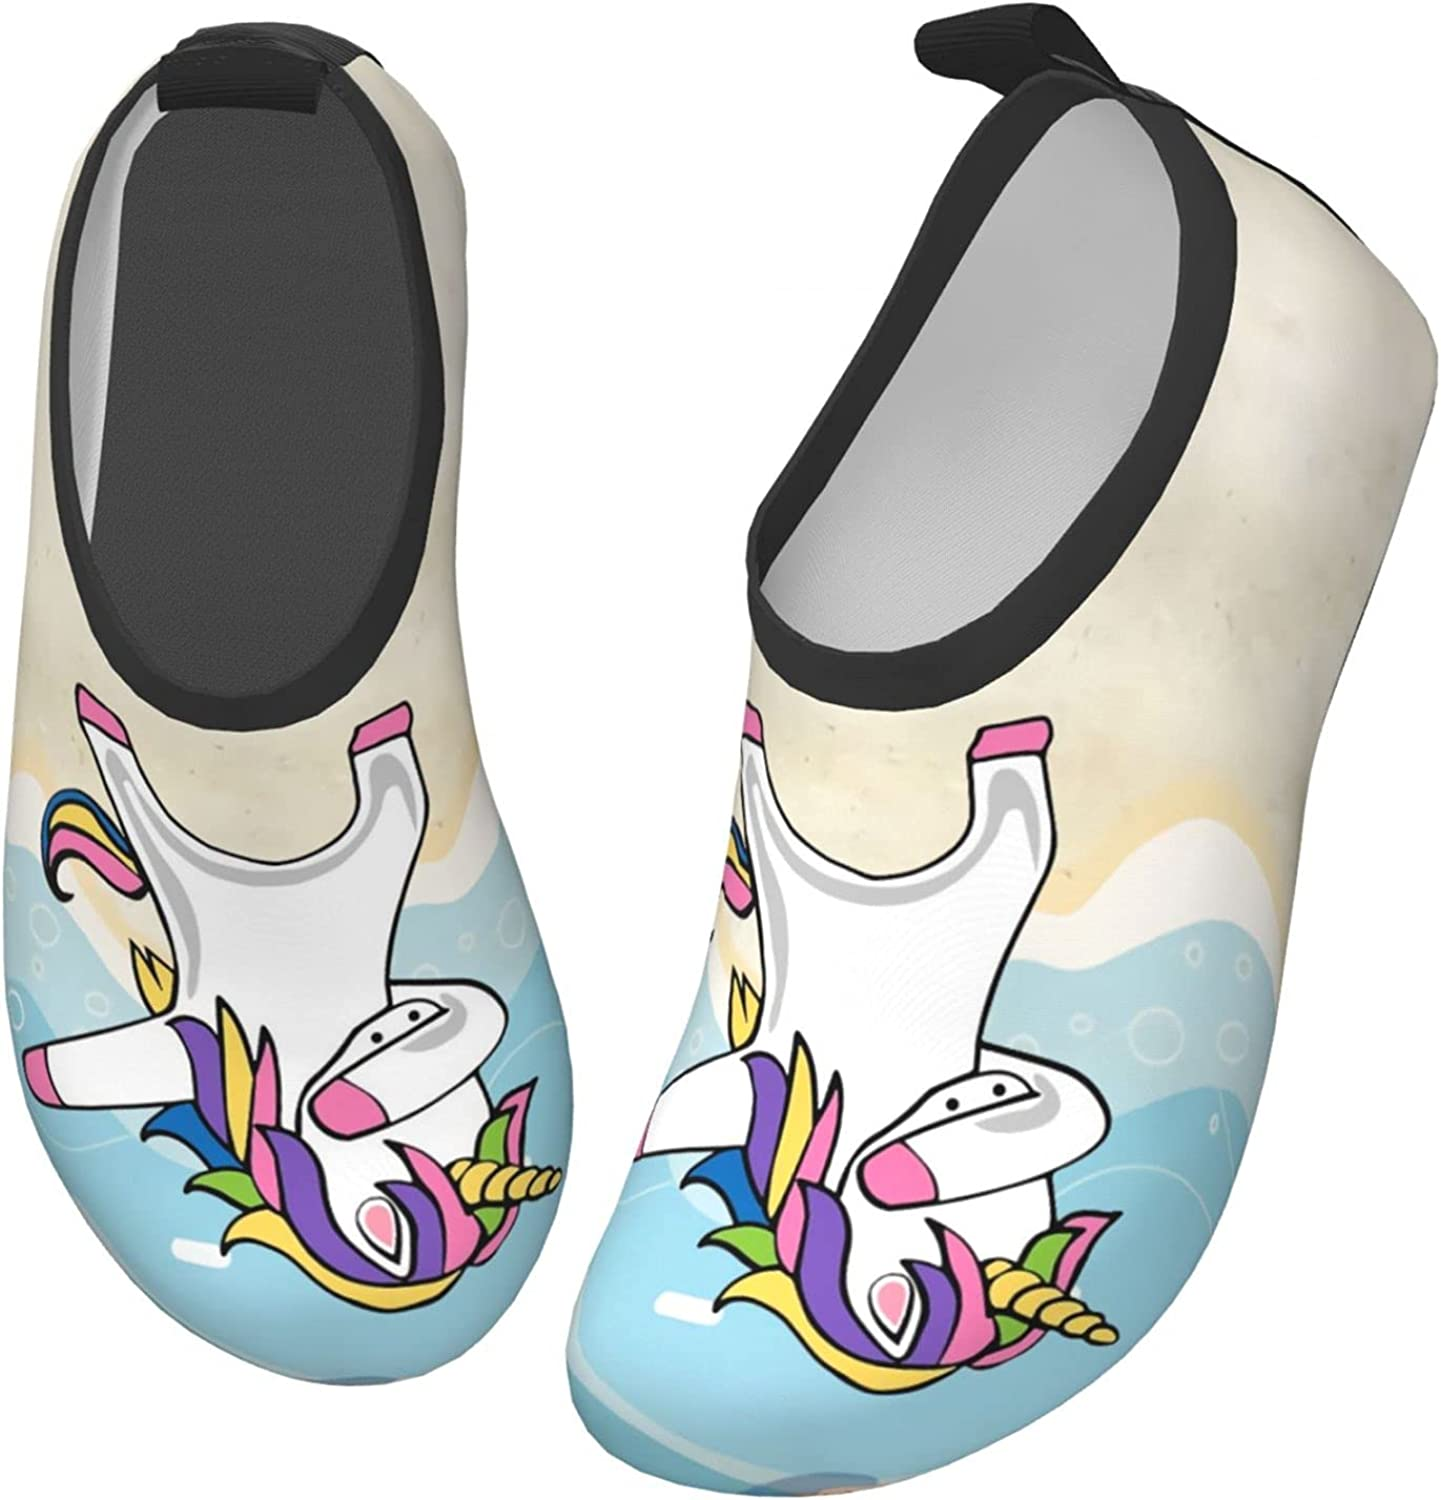 Water Shoes for Kids Boys Girls, Barefoot Quick-Dry Aqua Shoes for Beach Swim Surf Dance Exercise.(Unicorn)